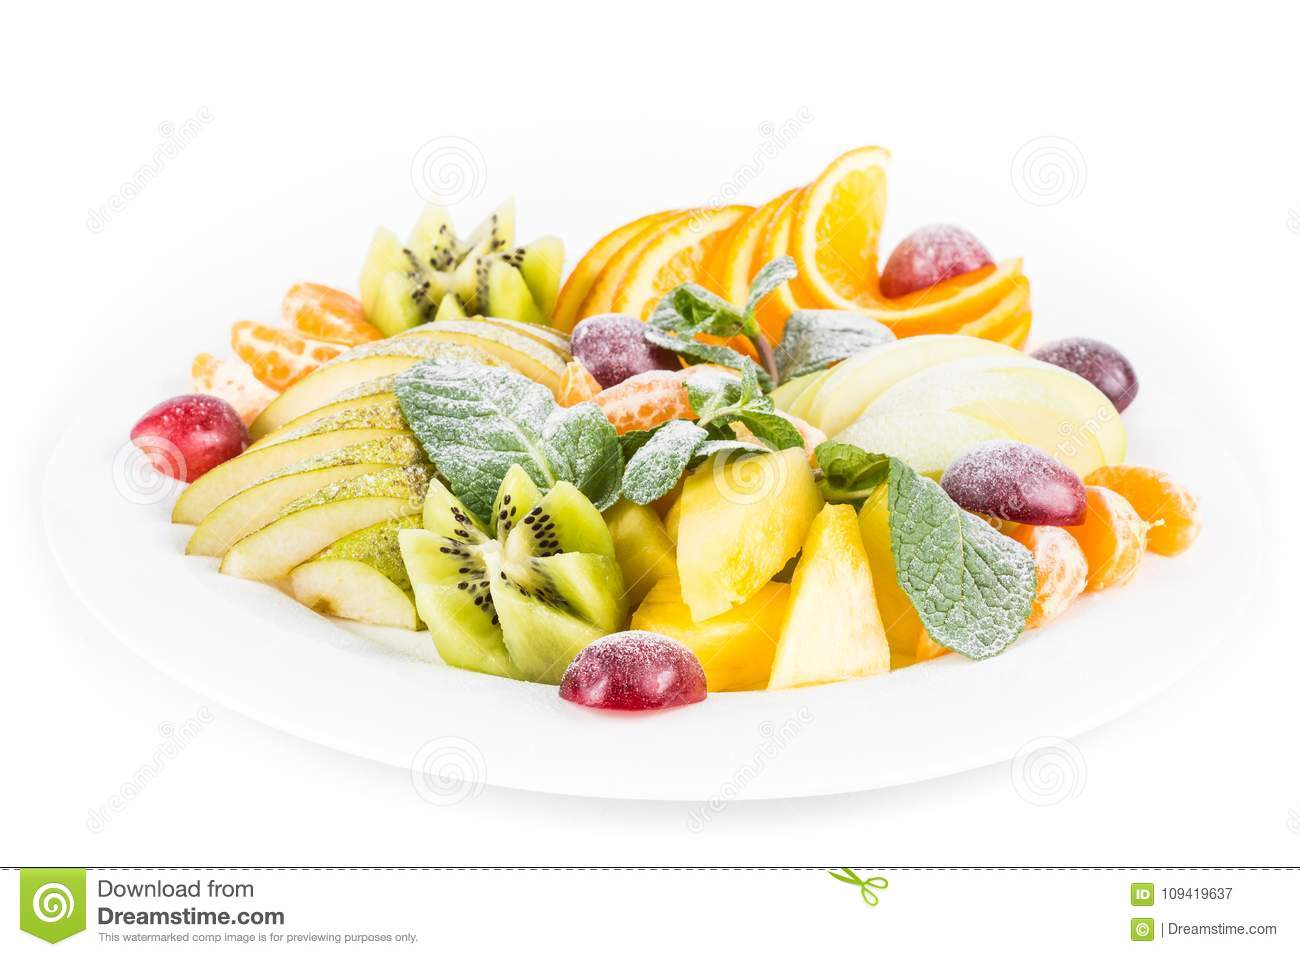 Fruit plate, isolated. apple, mandarin, kiwi, grapes, mint, pear, apple, pineapple. Fruits salad in plate close-up